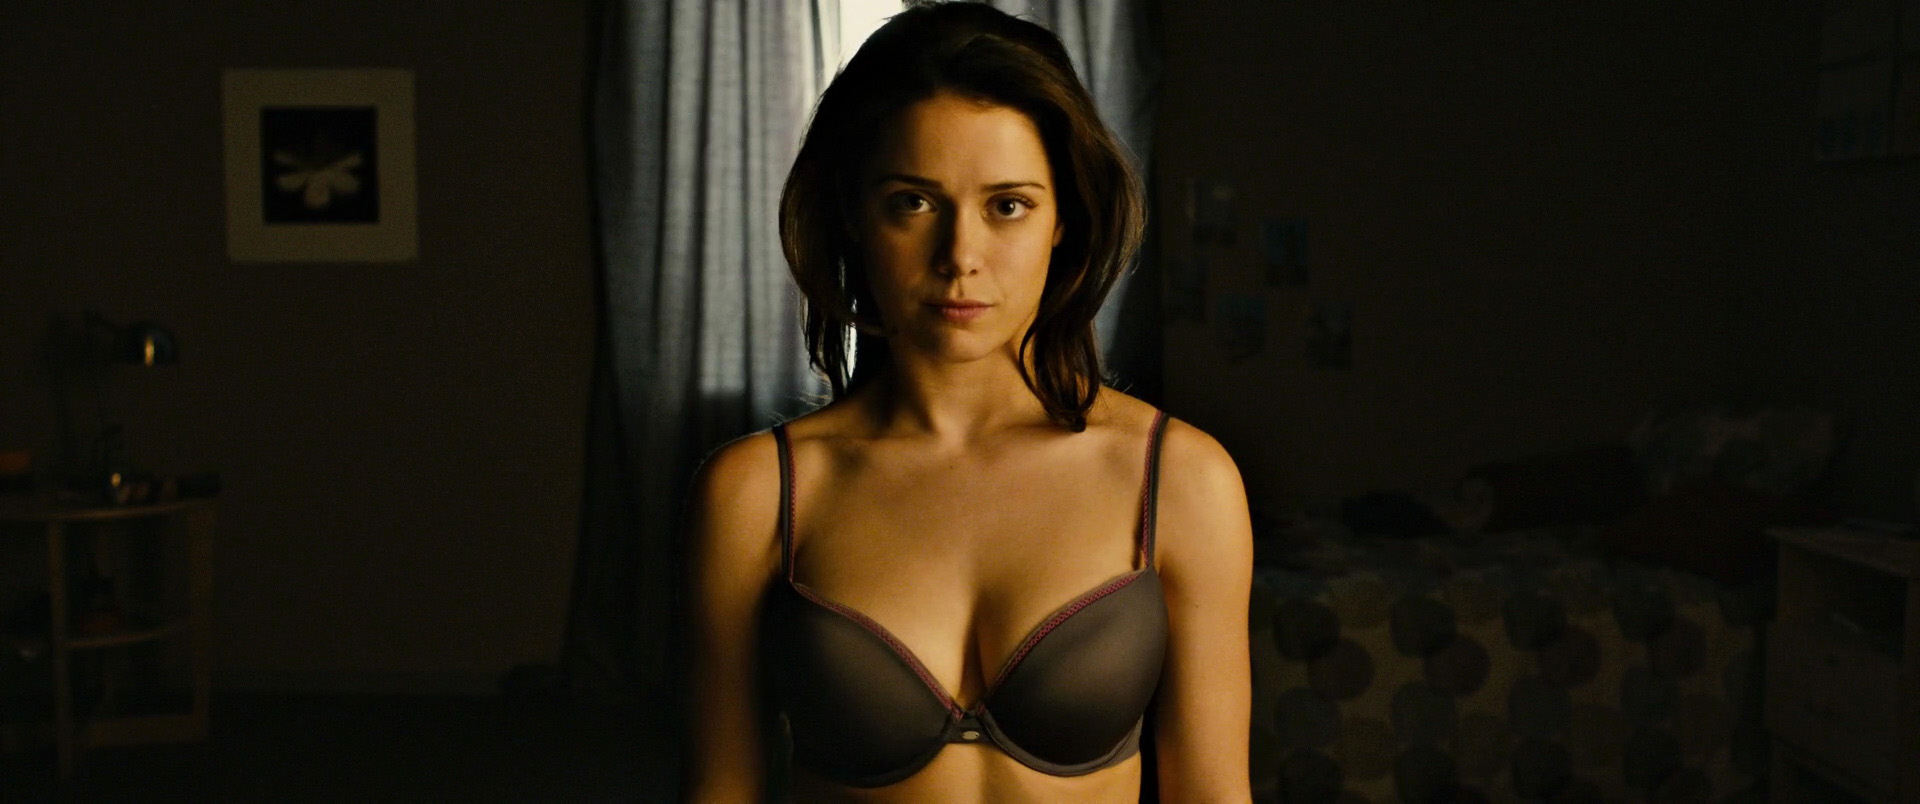 Ali Cobrin Nude Pictures